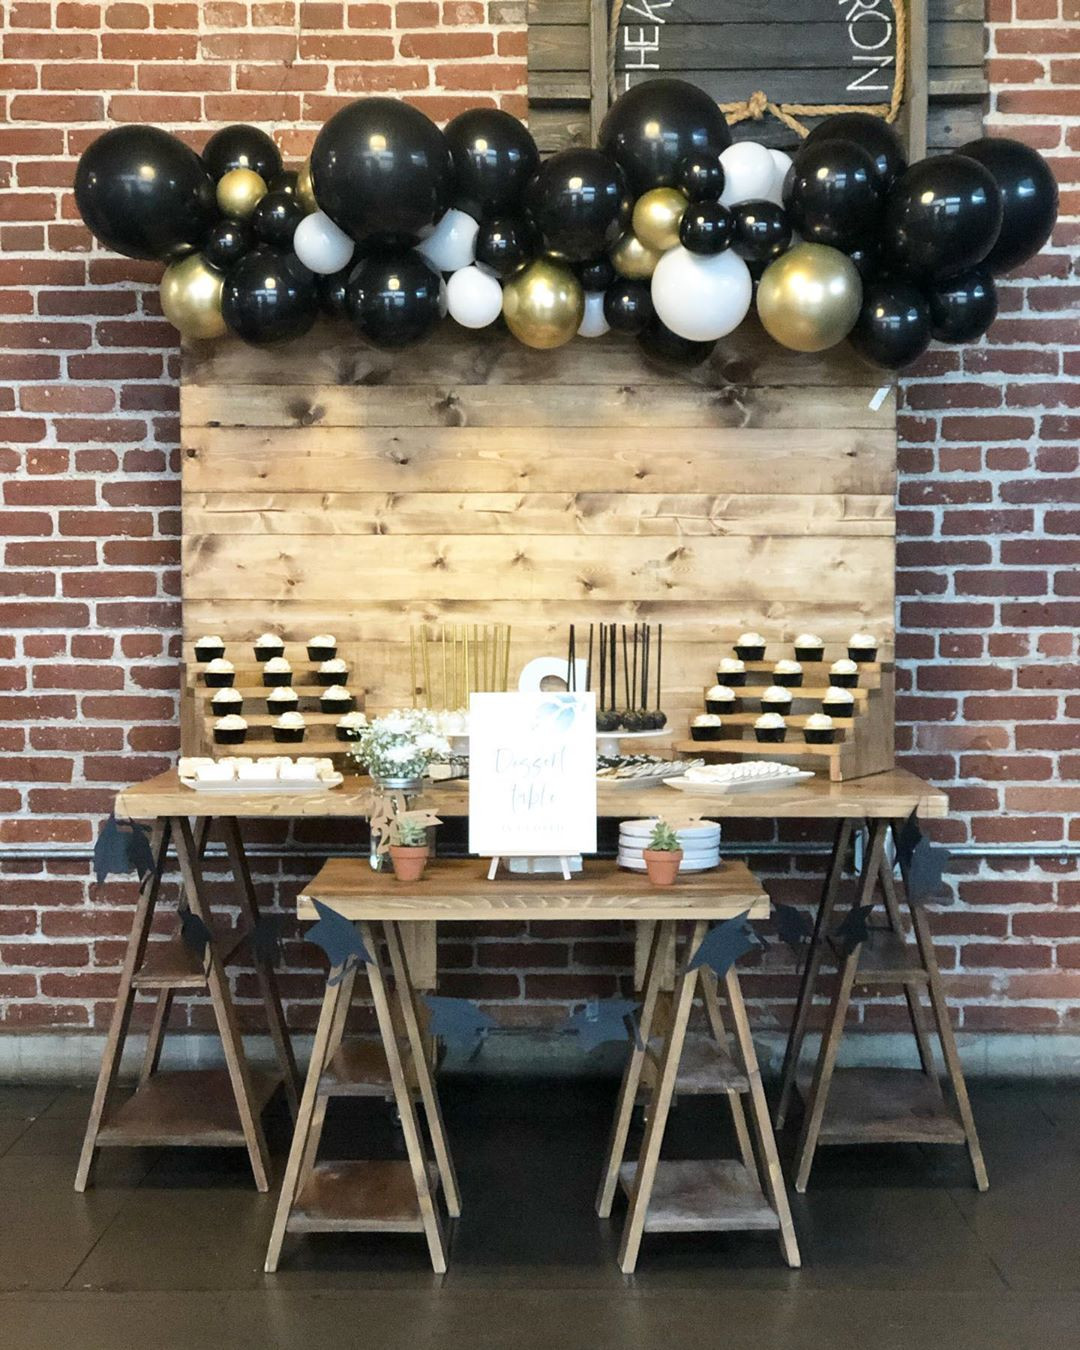 42 Best Graduation Party Ideas Guaranteed To Impress,graduation party ideas for daughter,graduation party ideas for guys,graduation party ideas 2020